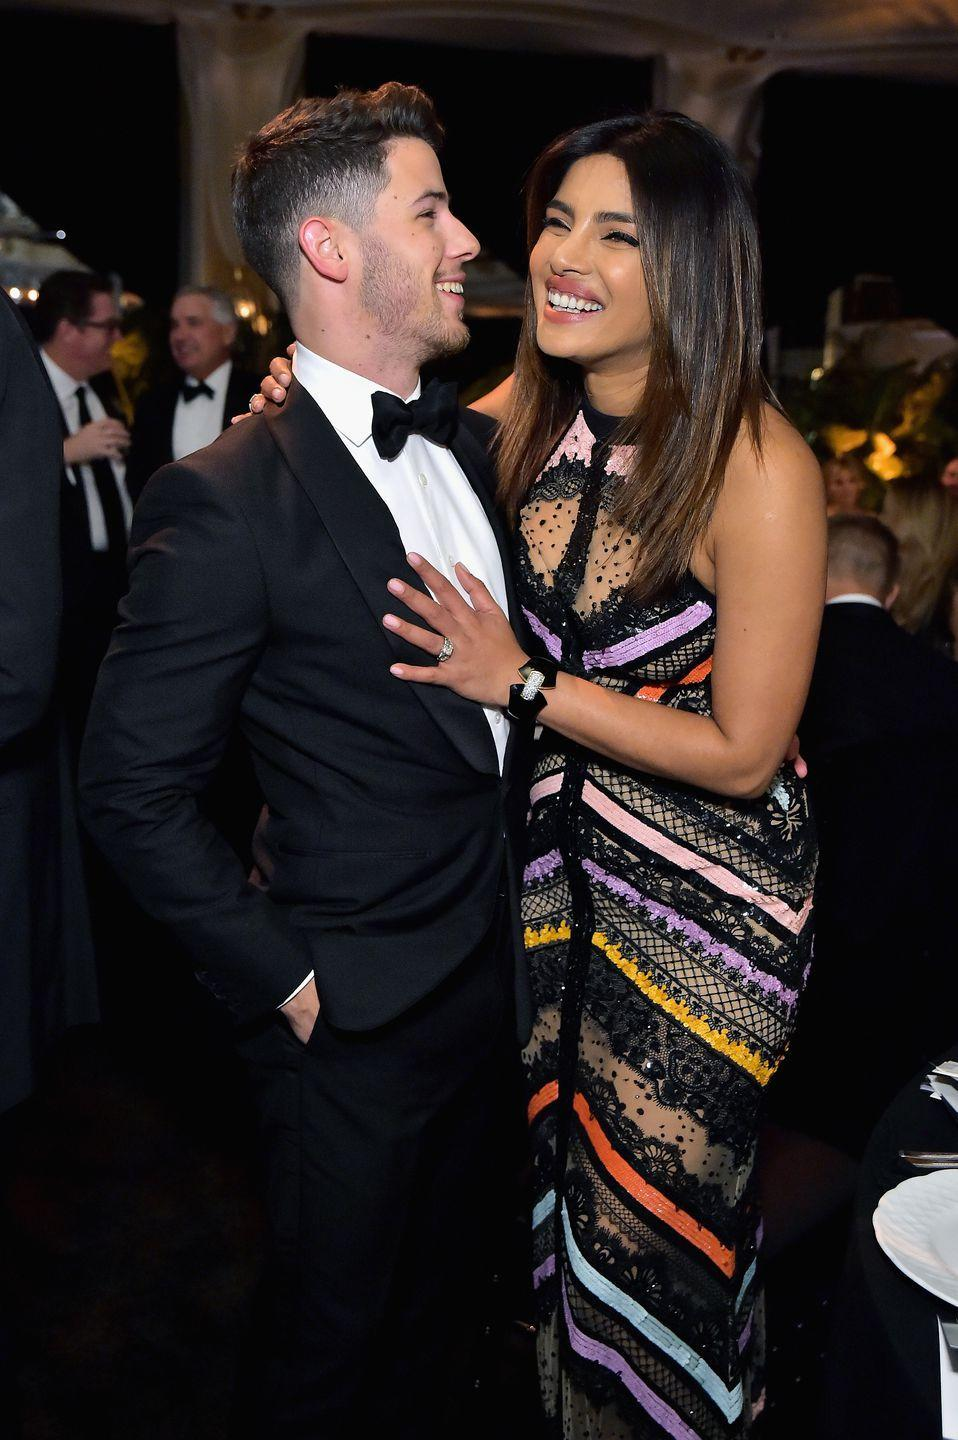 "<p>After two months of dating, Chopra and Jonas <a href=""https://www.harpersbazaar.com/celebrity/latest/a22572681/nick-jonas-priyanka-chopra-engaged/"" rel=""nofollow noopener"" target=""_blank"" data-ylk=""slk:became engaged"" class=""link rapid-noclick-resp"">became engaged</a> in July 2018. The couple then held a lavish <a href=""https://www.harpersbazaar.com/celebrity/latest/a25107771/priyanka-chopra-nick-jonas-wedding-details/"" rel=""nofollow noopener"" target=""_blank"" data-ylk=""slk:wedding"" class=""link rapid-noclick-resp"">wedding</a> in December of that year, complete with two ceremonies and multiple celebrations in India. While many fans noted their age difference, the couple couldn't care less. ""The age difference is not a big deal to them whatsoever,"" a source close to Jonas told <em><a href=""https://people.com/music/nick-jonas-loves-priyanka-chopra-older-mature/"" rel=""nofollow noopener"" target=""_blank"" data-ylk=""slk:People"" class=""link rapid-noclick-resp"">People</a></em>. In fact, Nick reportedly is a fan of the age gap between him and Priyanka. He ""loves dating older women, and if anything it makes Priyanka even more attractive to him,"" the source added. Jonas has ""always been very mature for his age"" and is ""an old soul.""</p>"